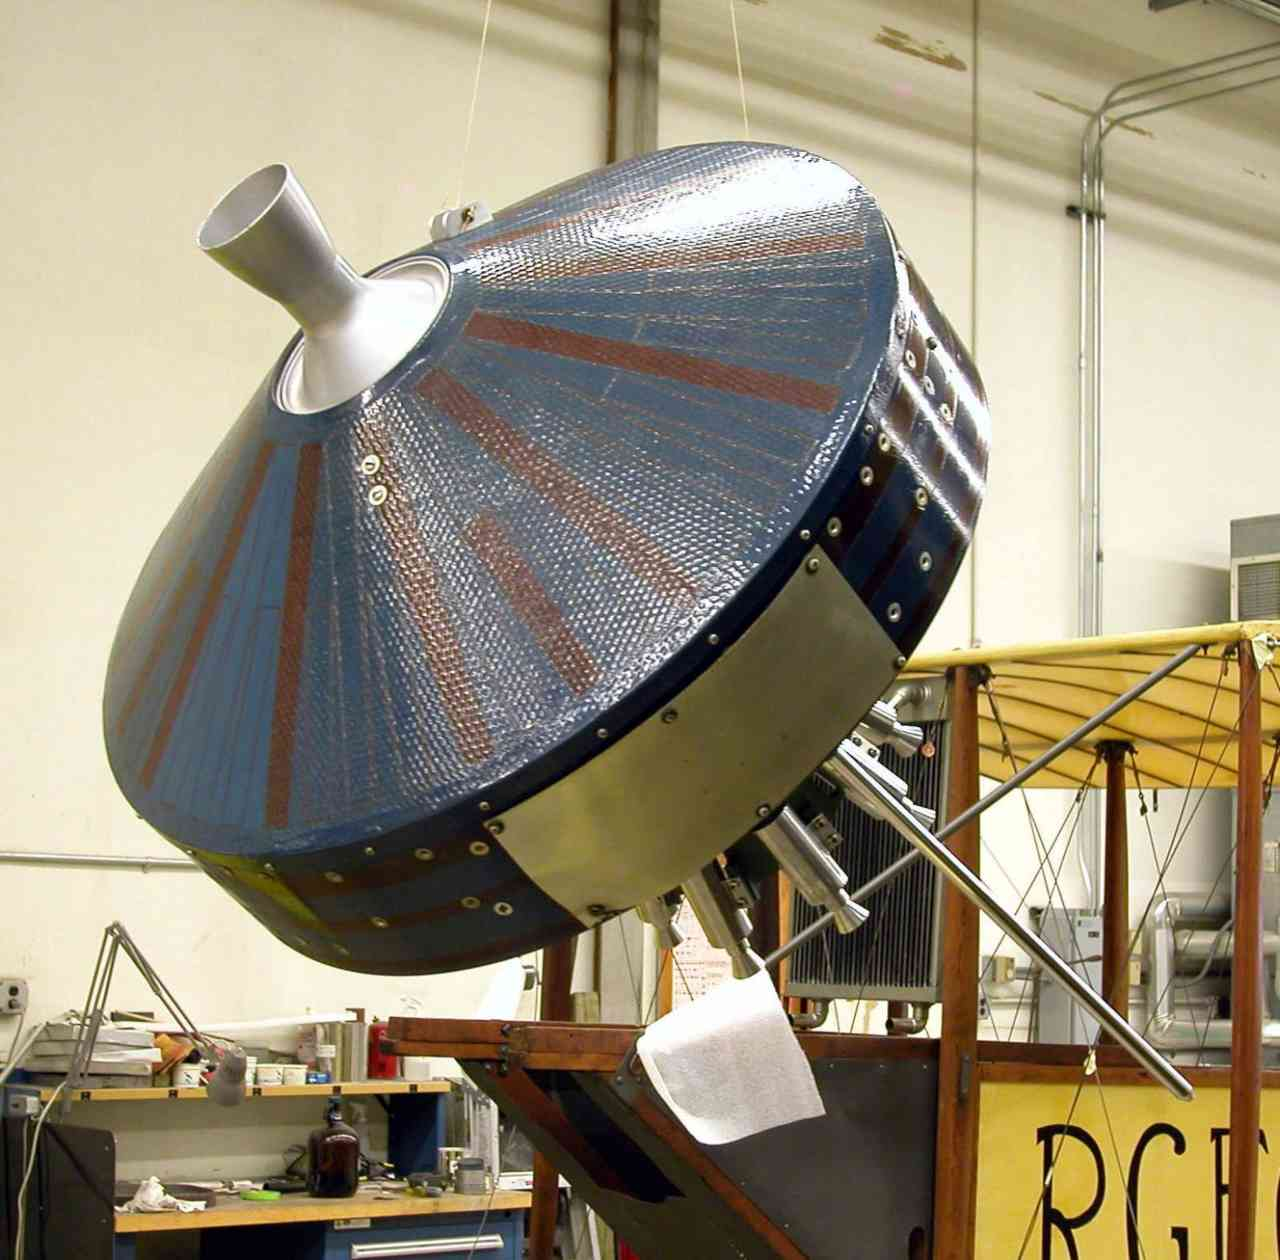 Replica on the Pioneer 1 spacecraft on display at the Smithsonian Museum in Virginia. Image courtesy: The Smithsonian Institute